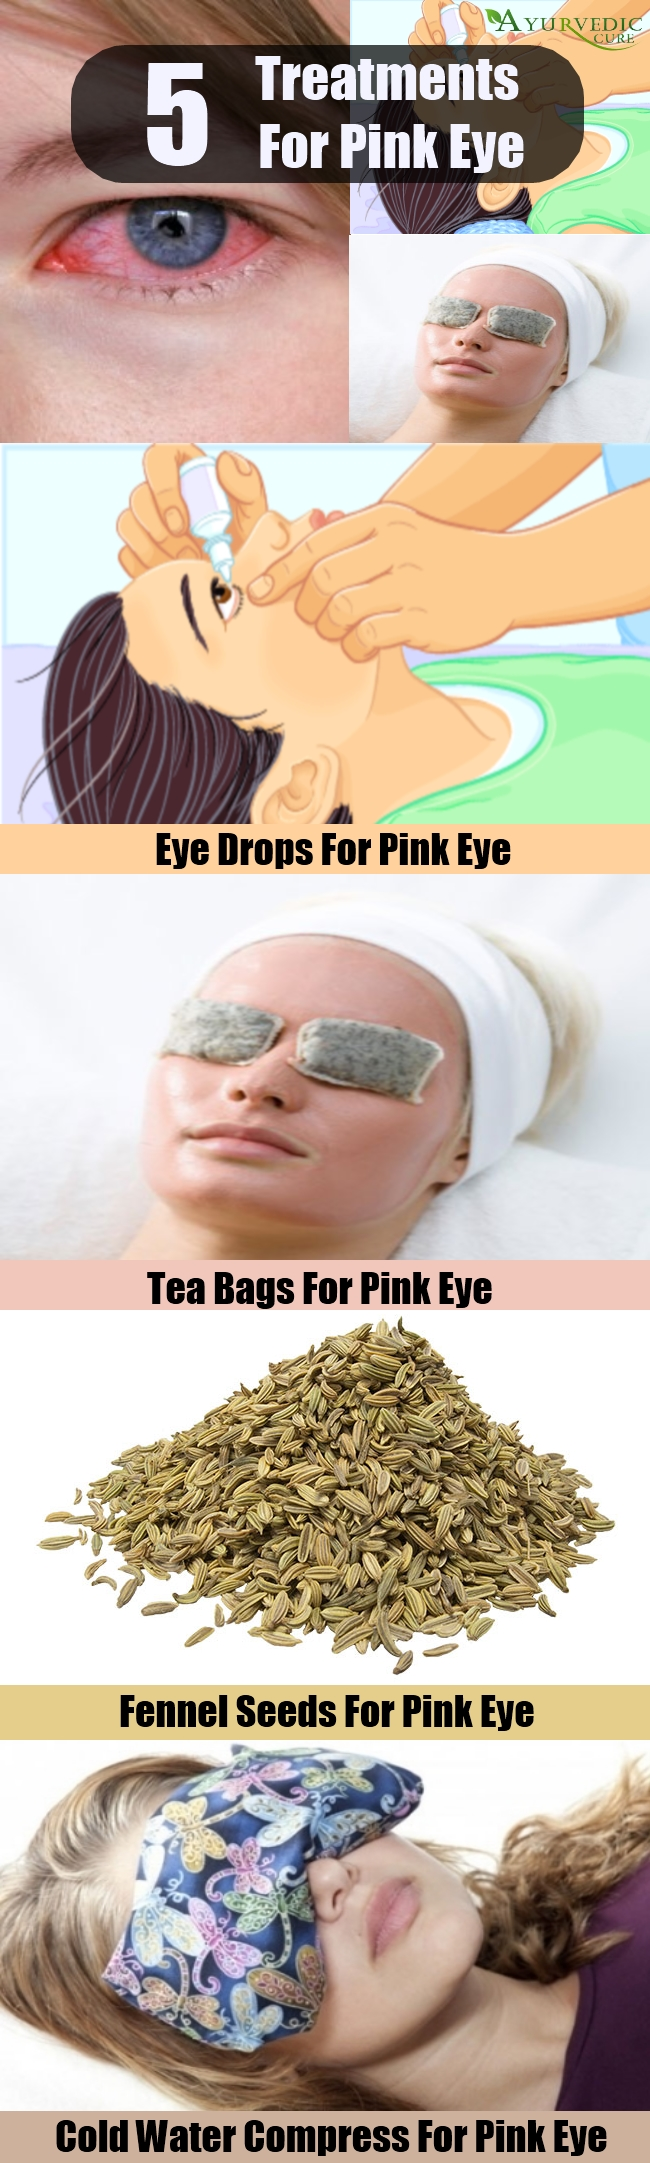 5 Different Treatments For Pink Eye